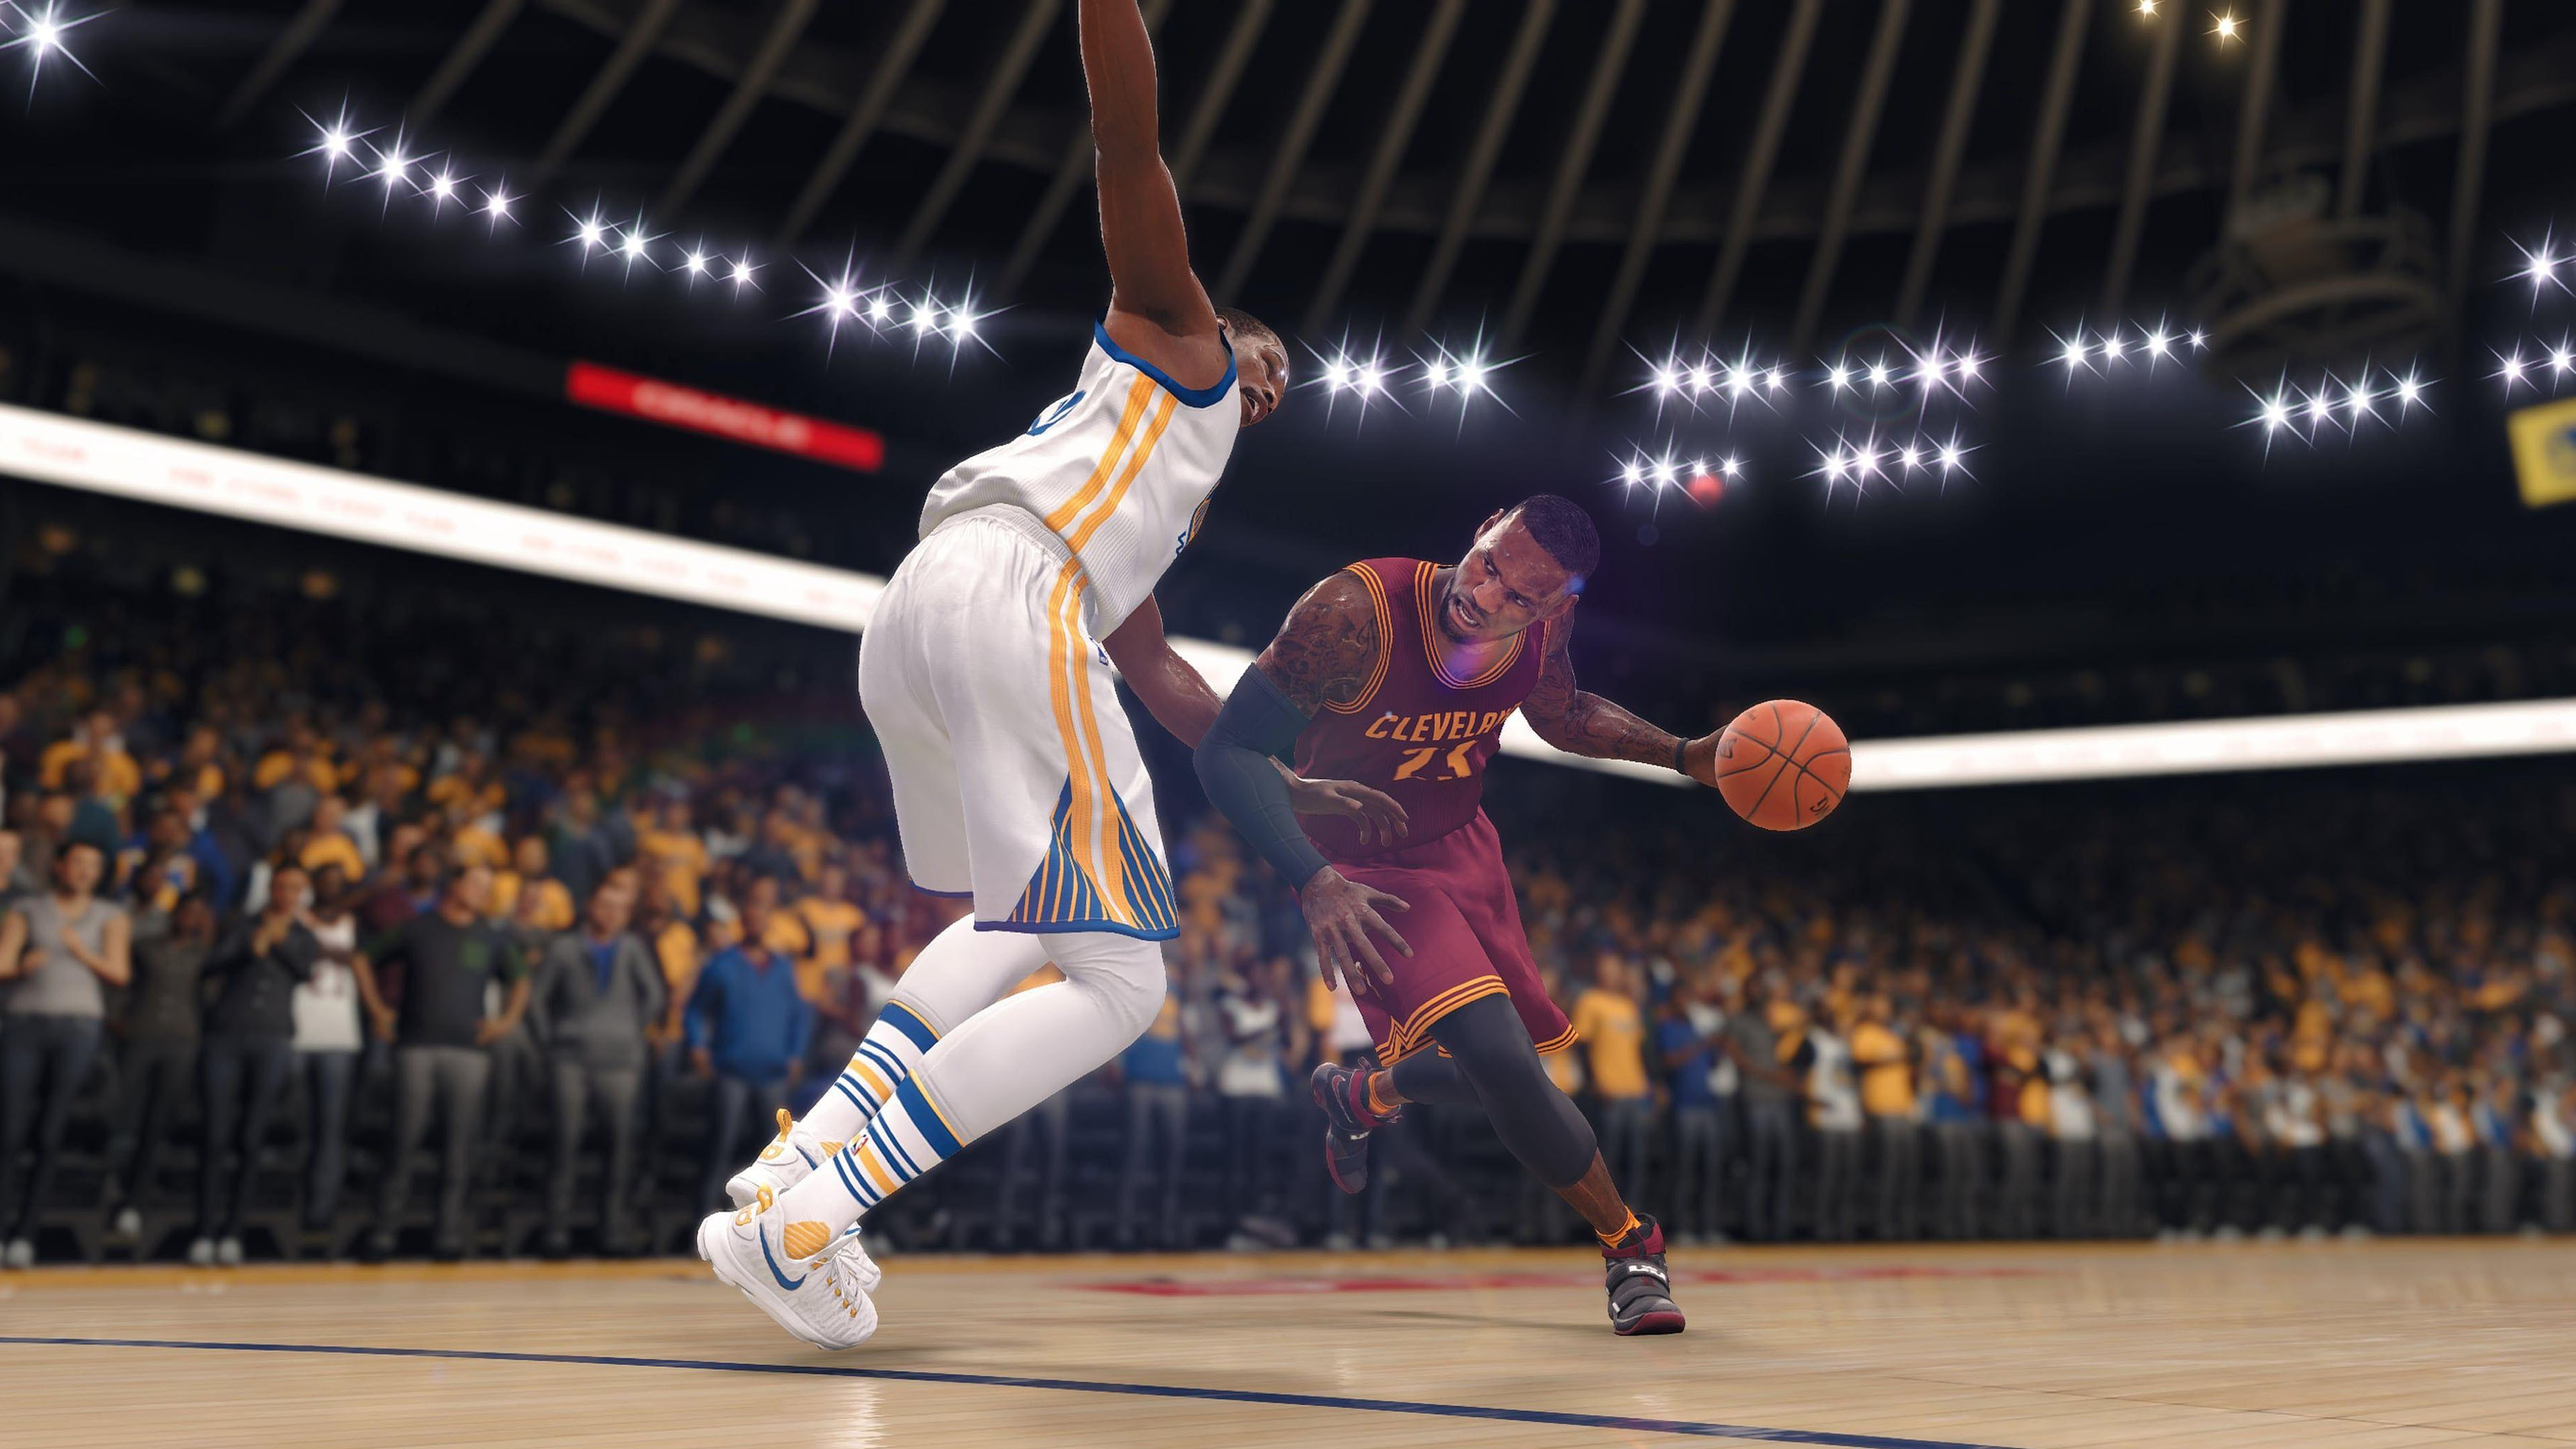 wallpaper nba live 18 4k screenshot e3 2017 games 13912